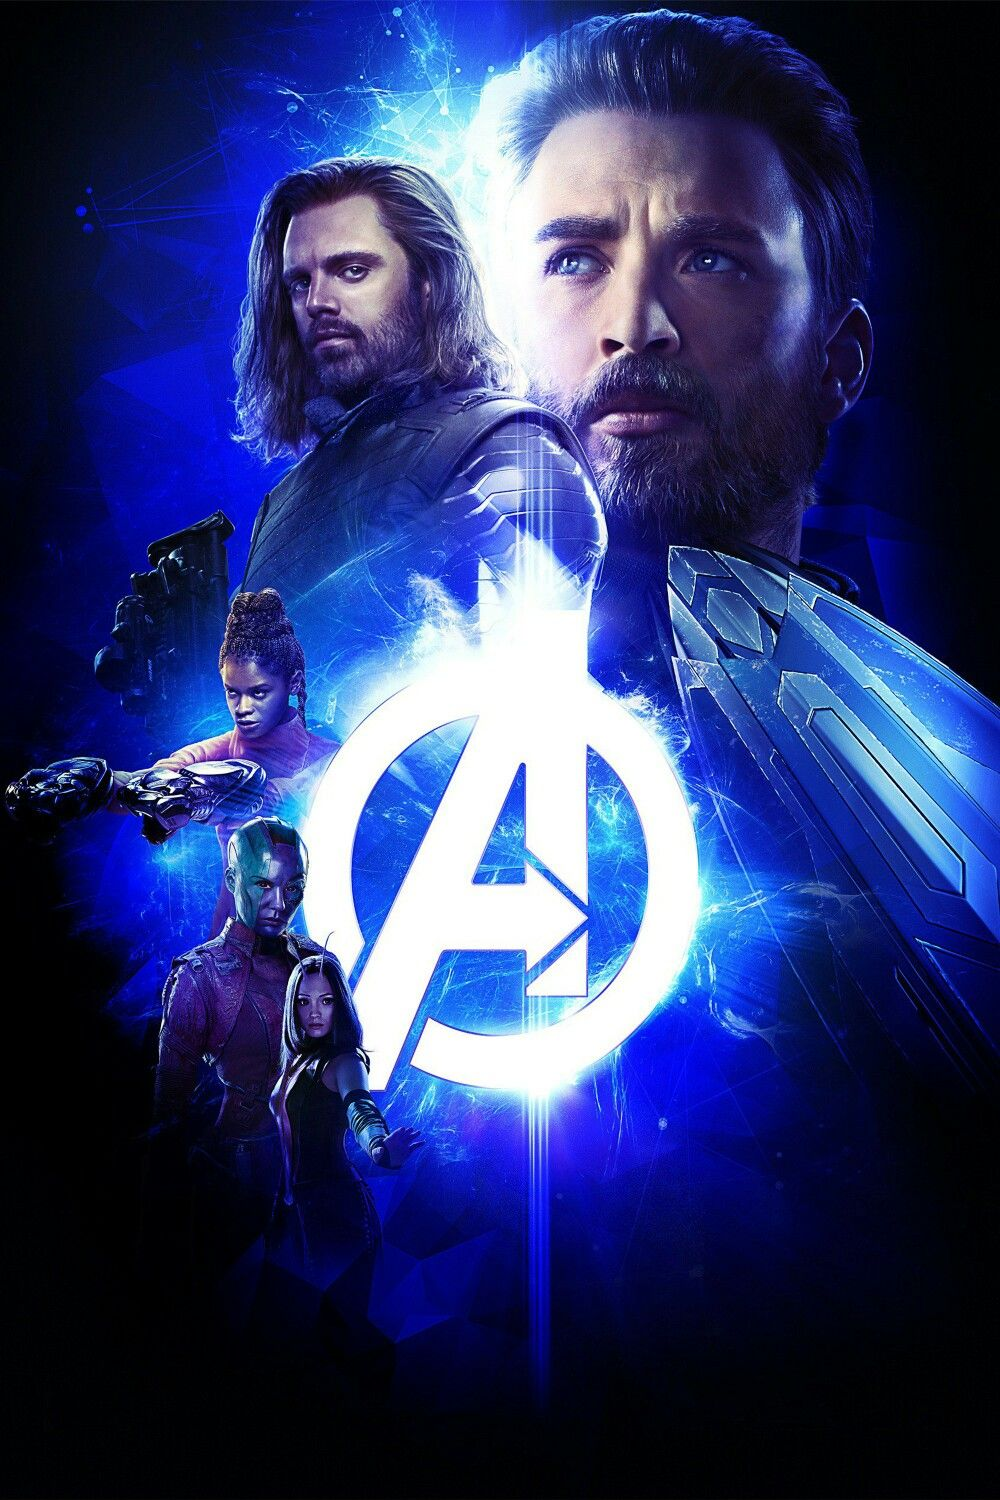 Avengers Infinity War Textless Movie Poster Textless Movie Posters Artwork Scififantasy Movie Posters Hor Marvel Studios Avengers Infinity War New Avengers